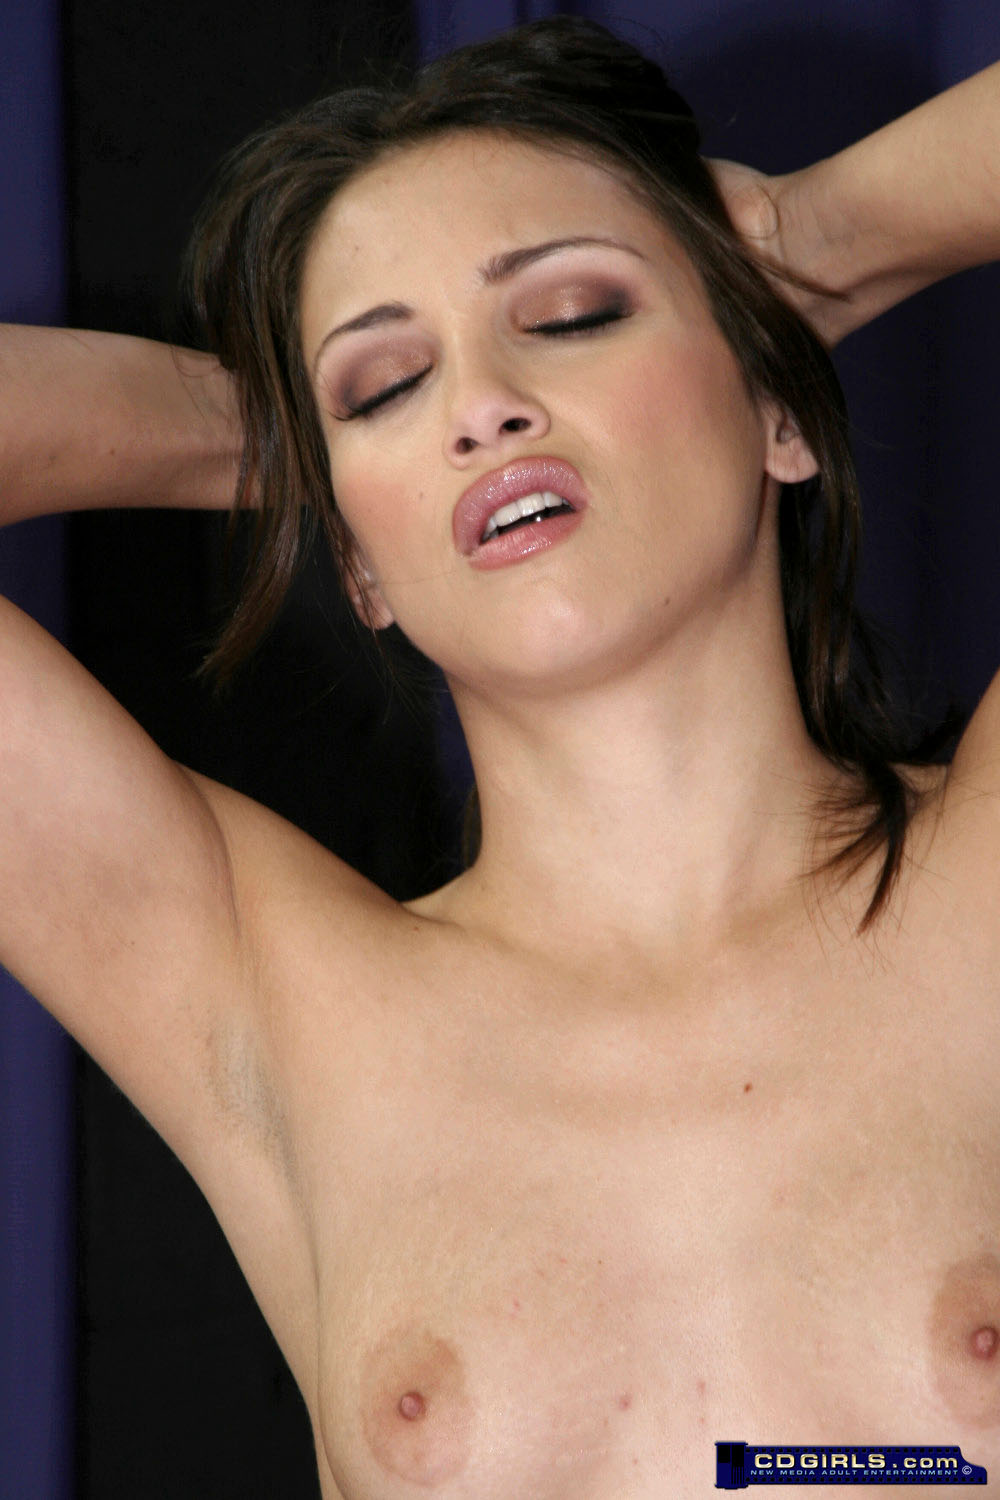 Celeste's orgasm filled Sybian ride image #2